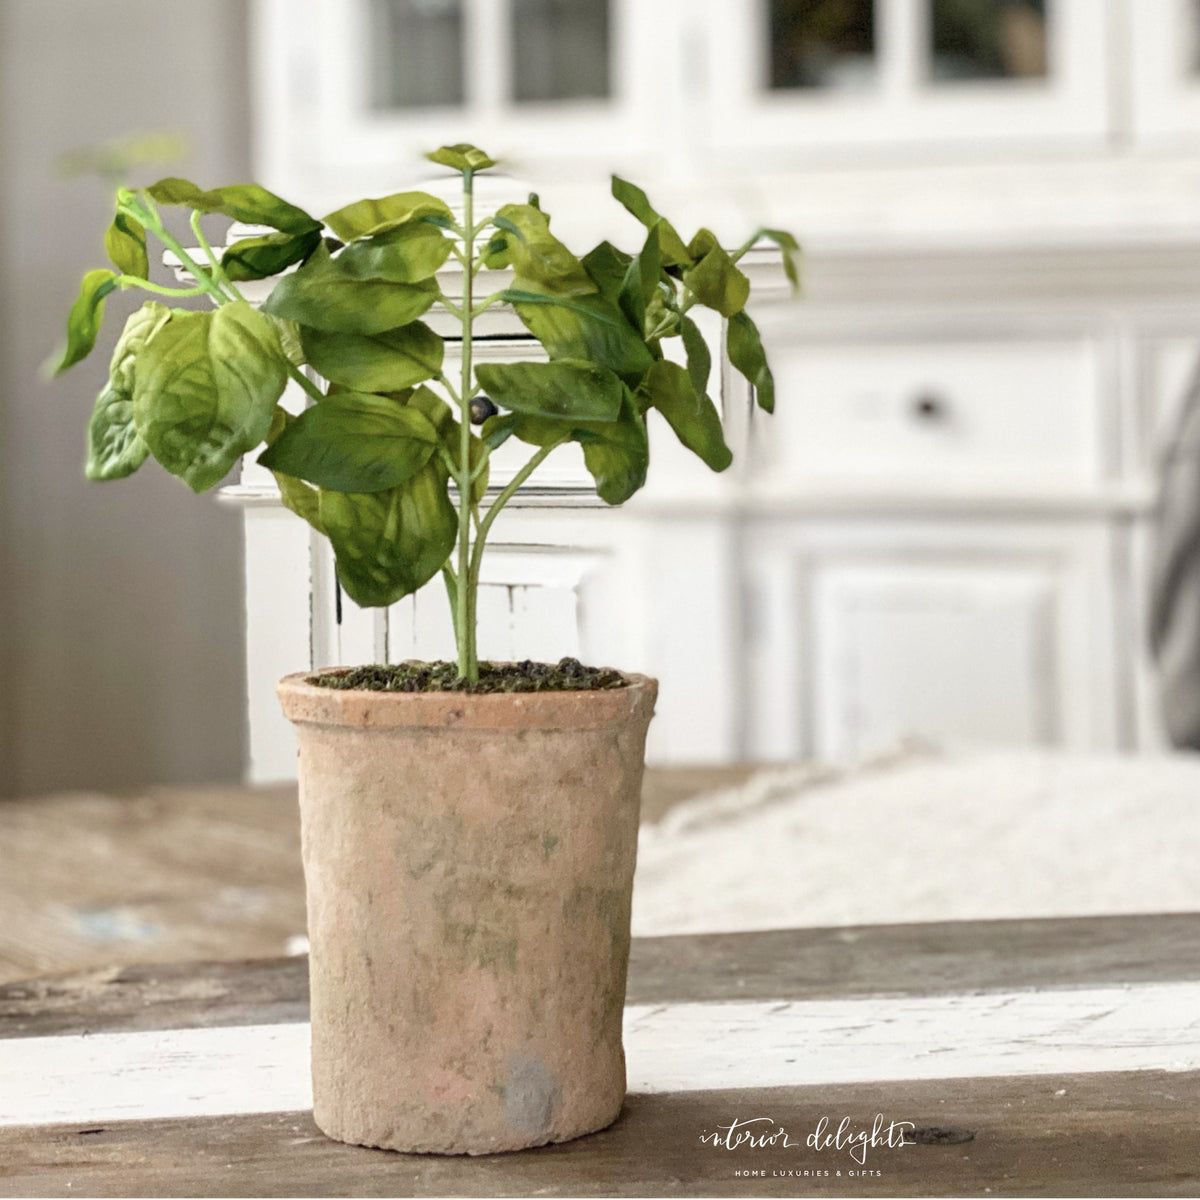 Irregular Terra Cotta Planter with Basil